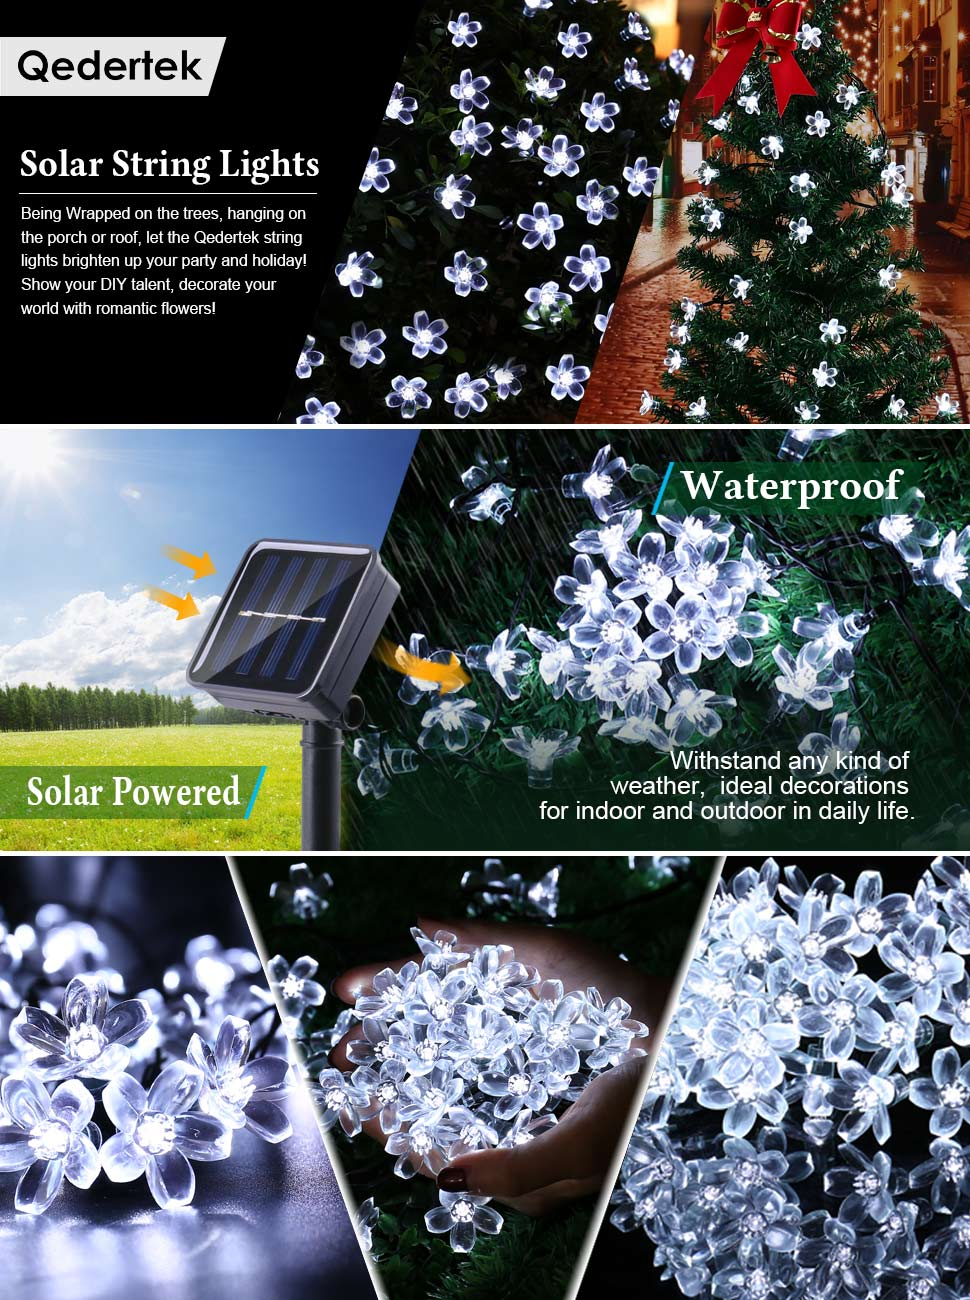 Solar Christmas Decorations.Qedertek Solar Christmas String Lights Fairy Garden Blossom Led Lights For Outdoor Home Lawn Patio Party And Holiday Decorations 2pack White